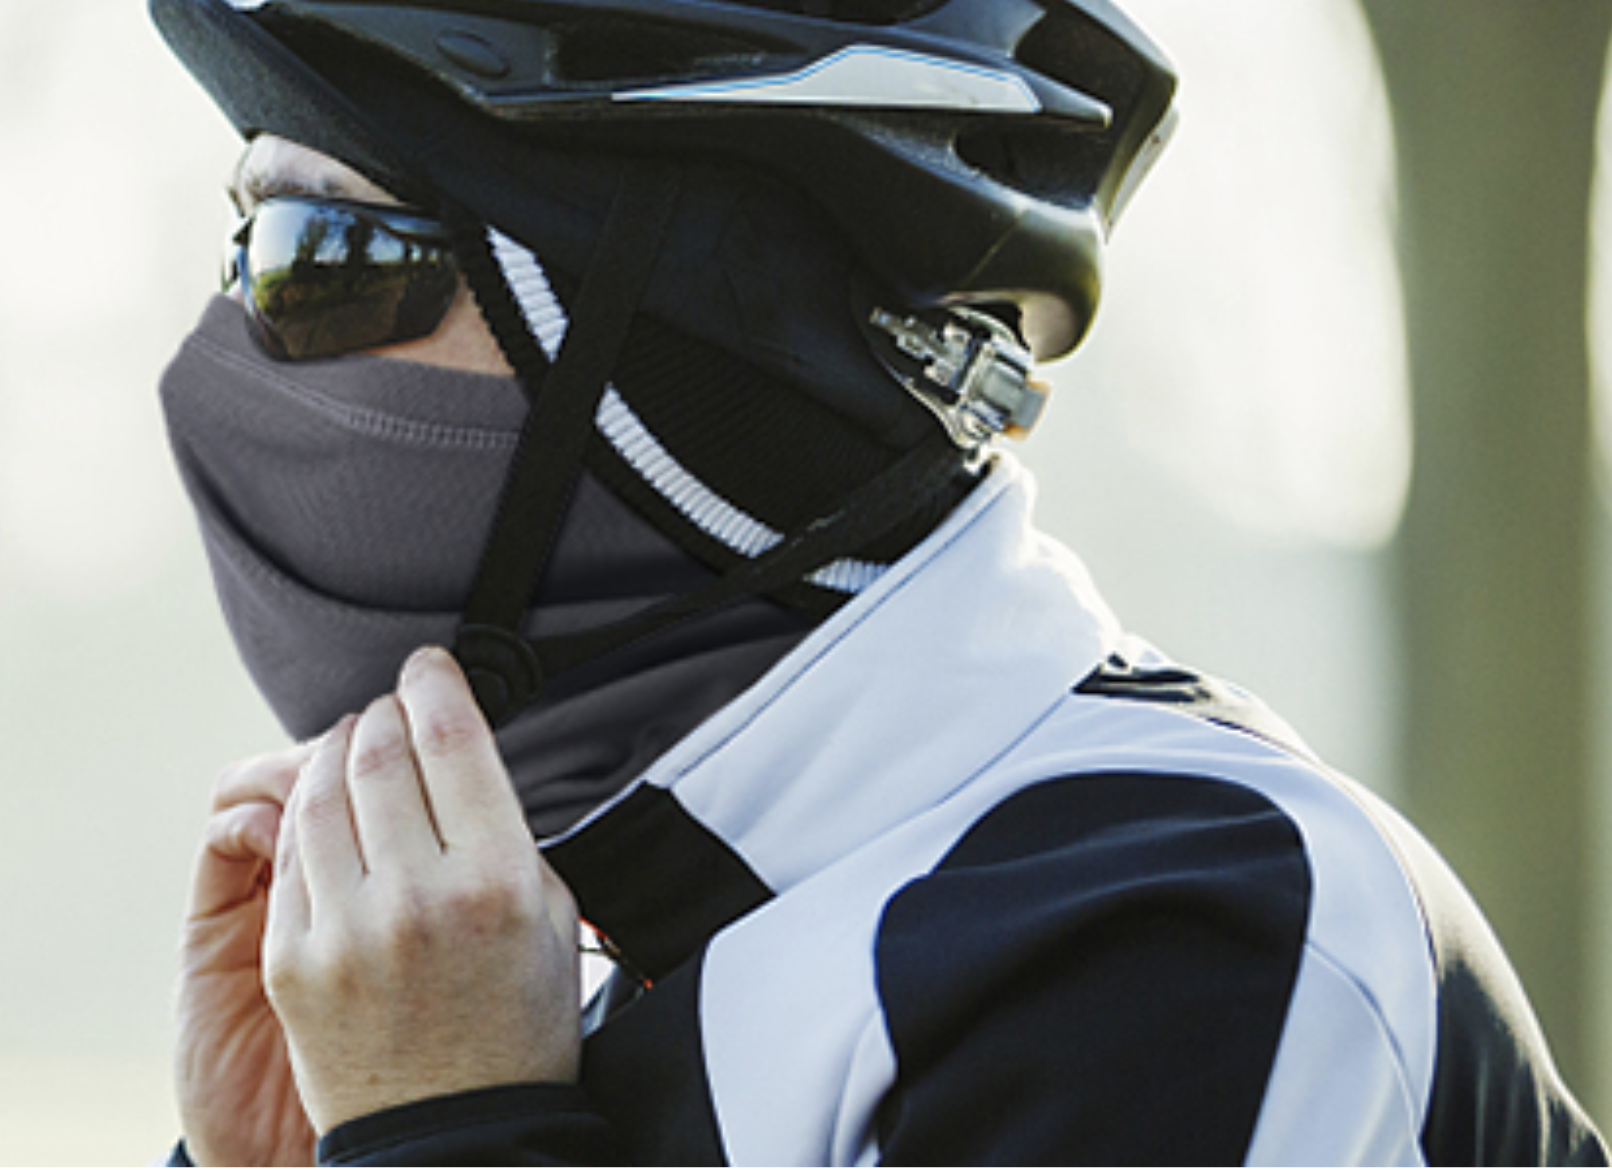 A biker with a face covering that covers their nose, mouth, chin, and neck